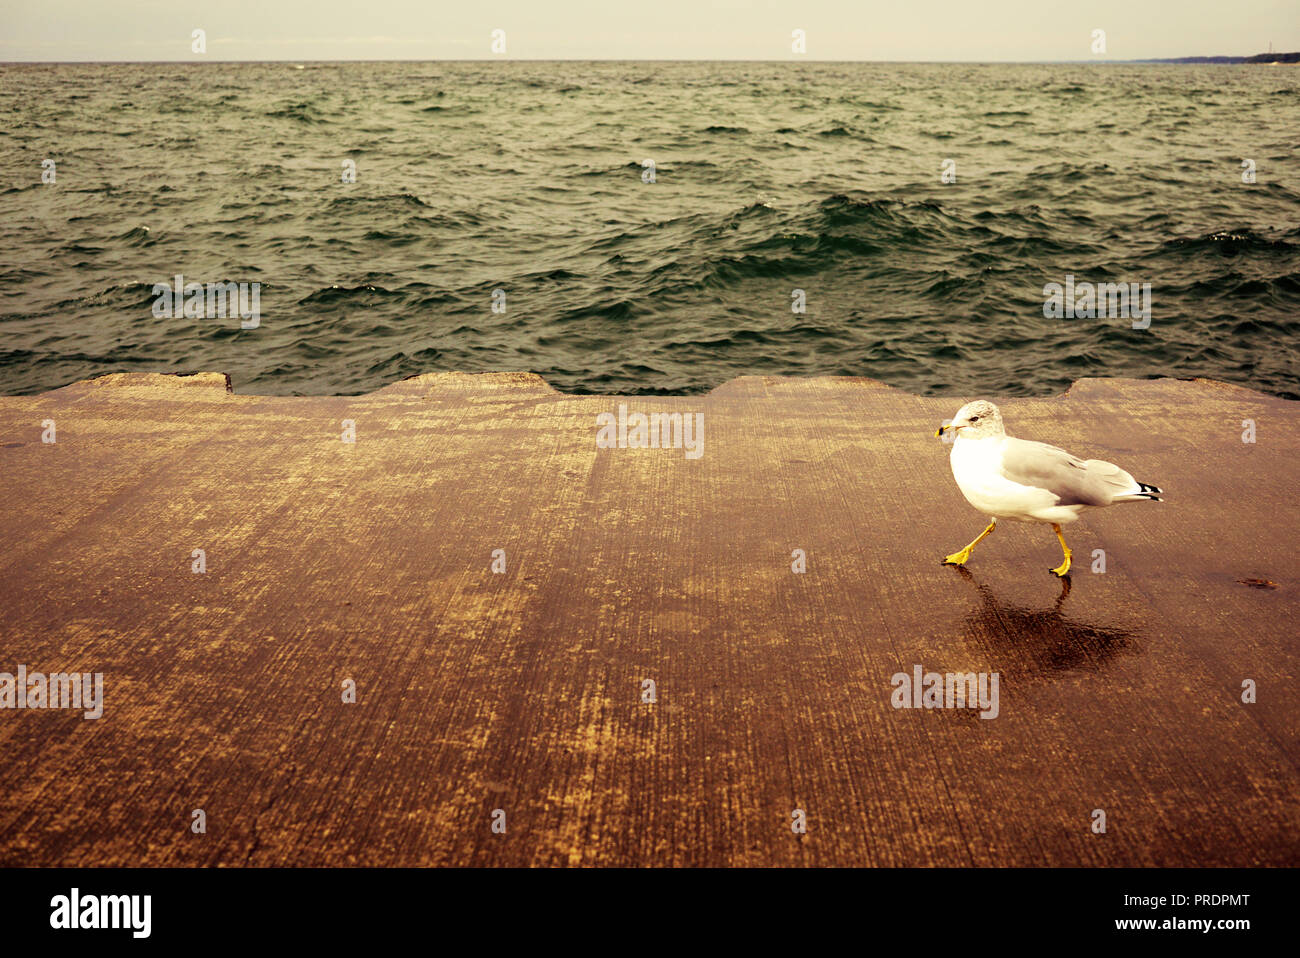 The Seagull Is Walking Along The Pier On A Rainy Day The Bird Walks